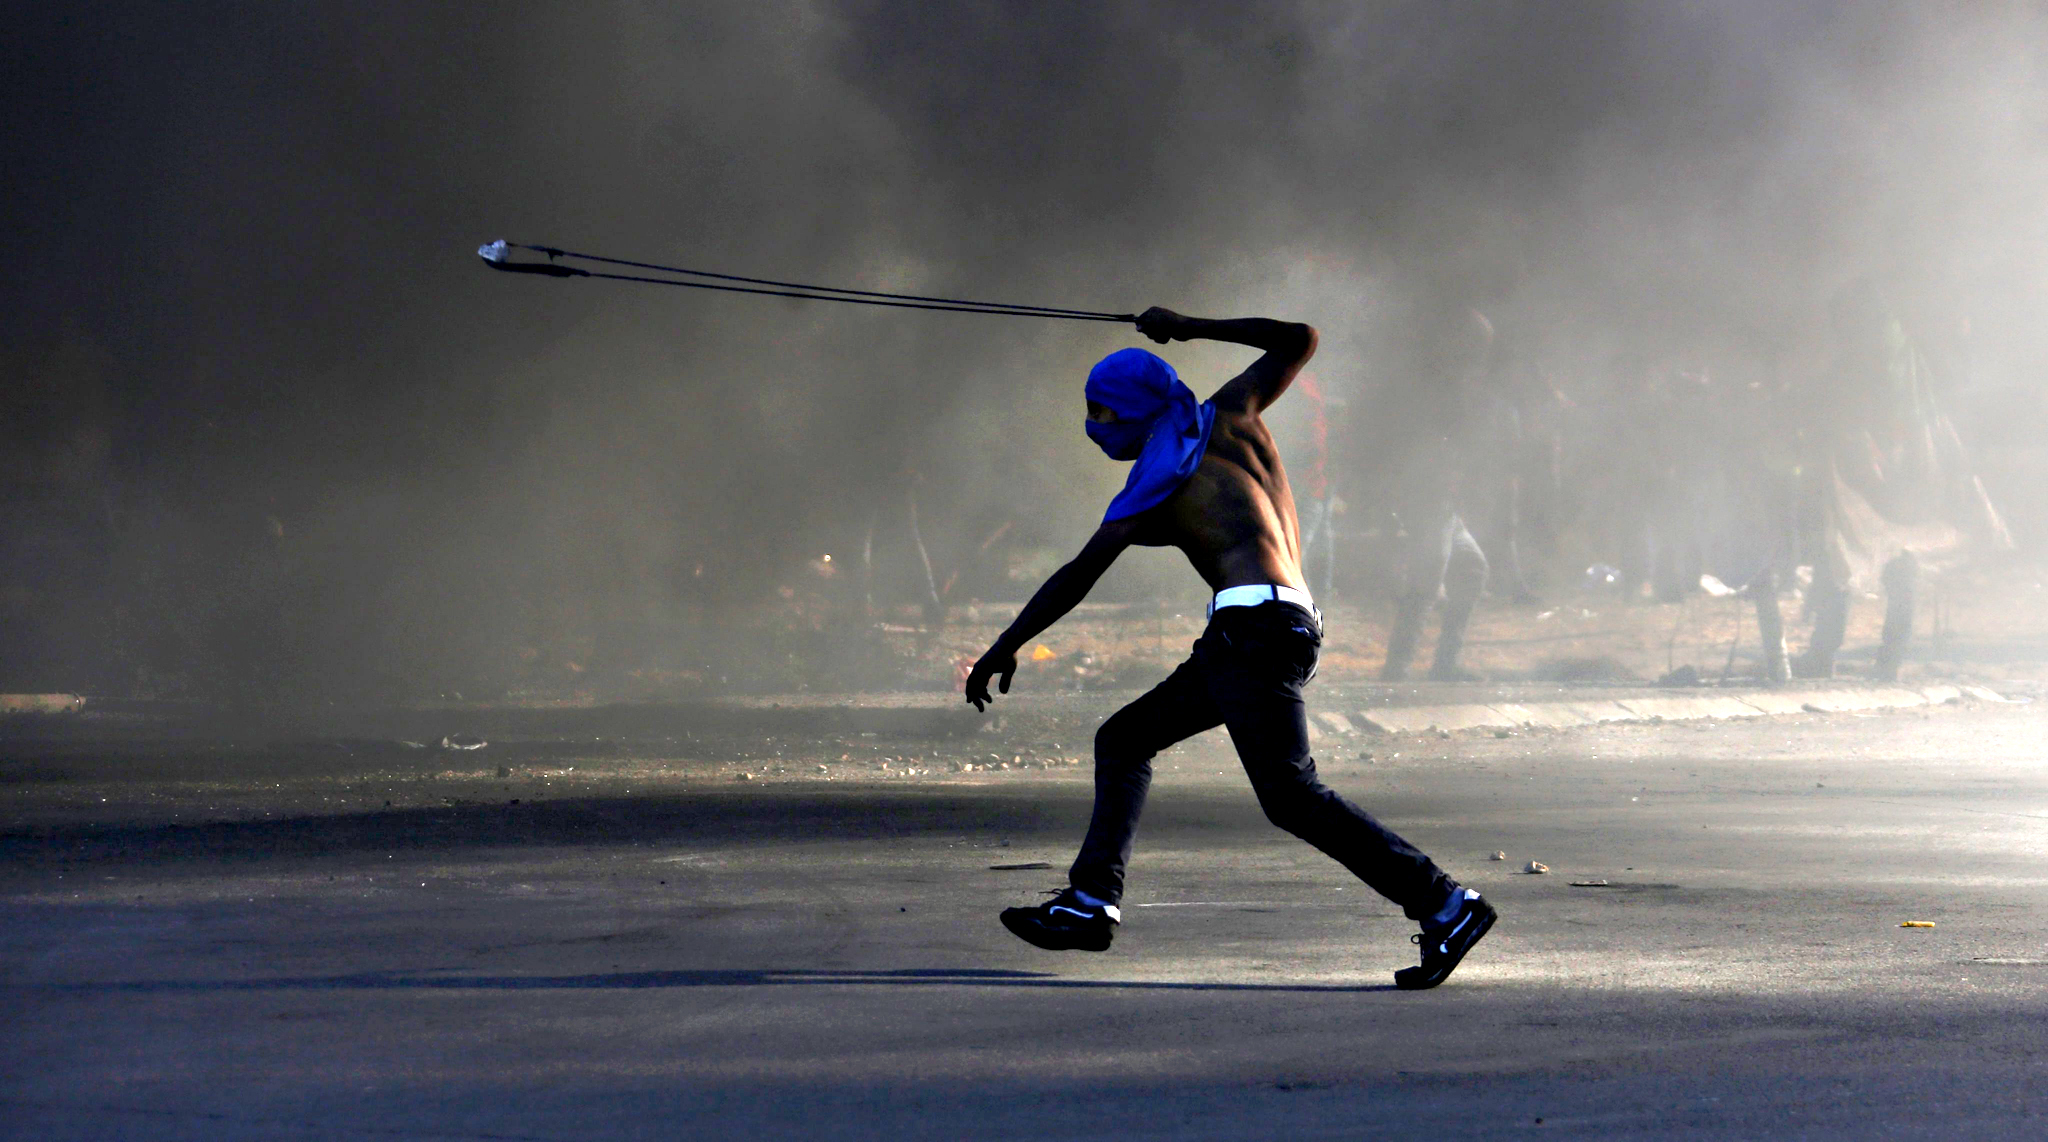 A Palestinian protester hurls stones at Israeli soldiers during clashes in Beit El, on the outskirts of the West Bank city of Ramallah, on Friday. According to reports, 22 Palestinians were injured during the clashes.